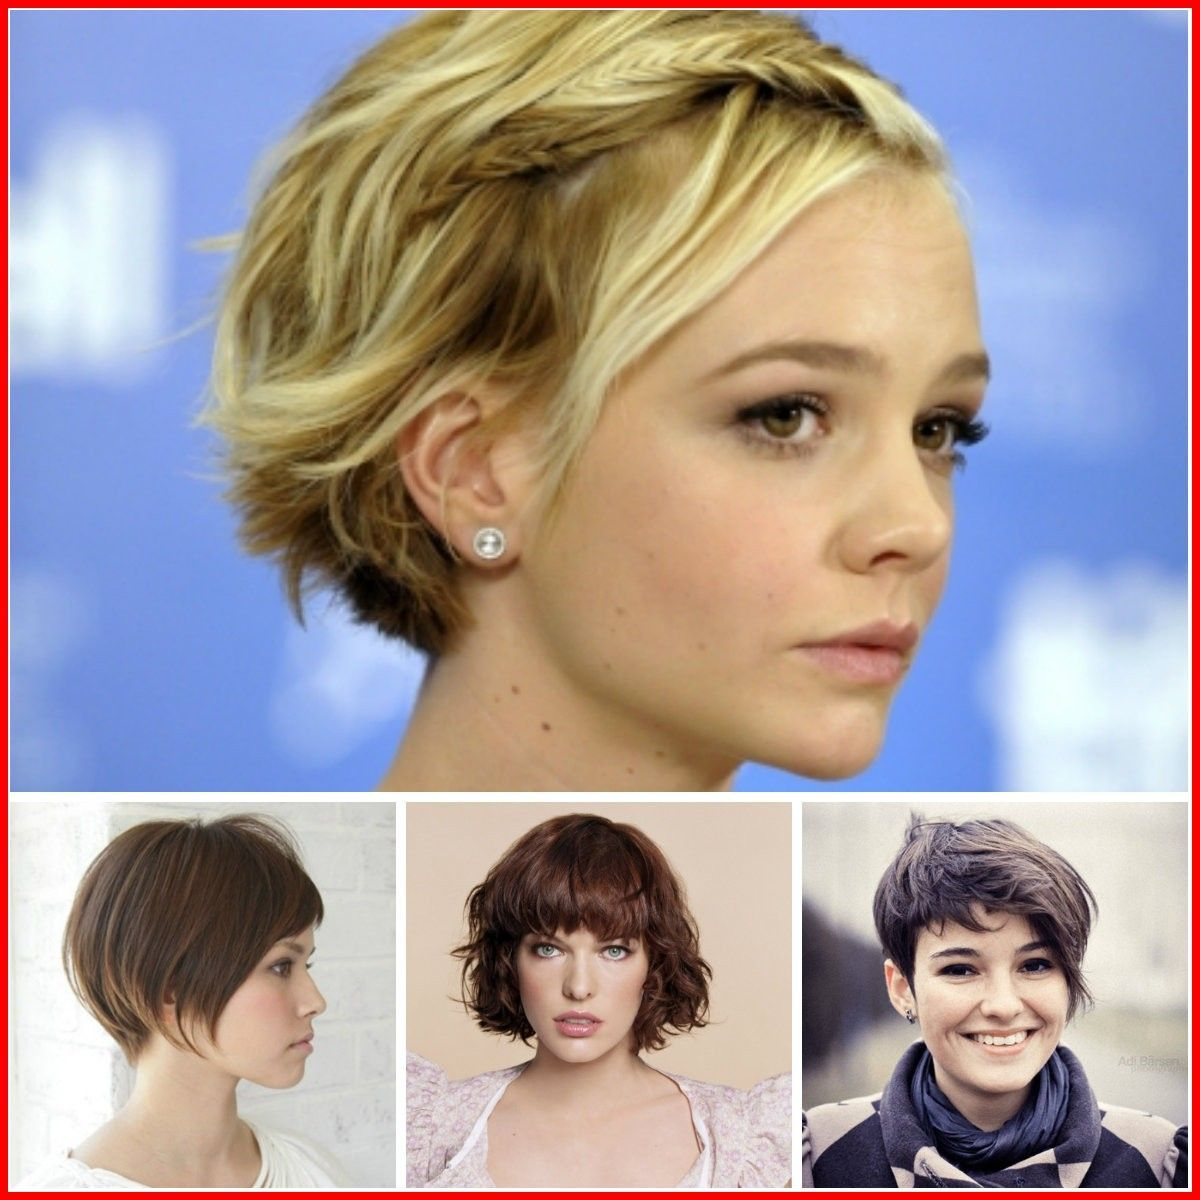 Image result for short hairstyles for tween girls wedding